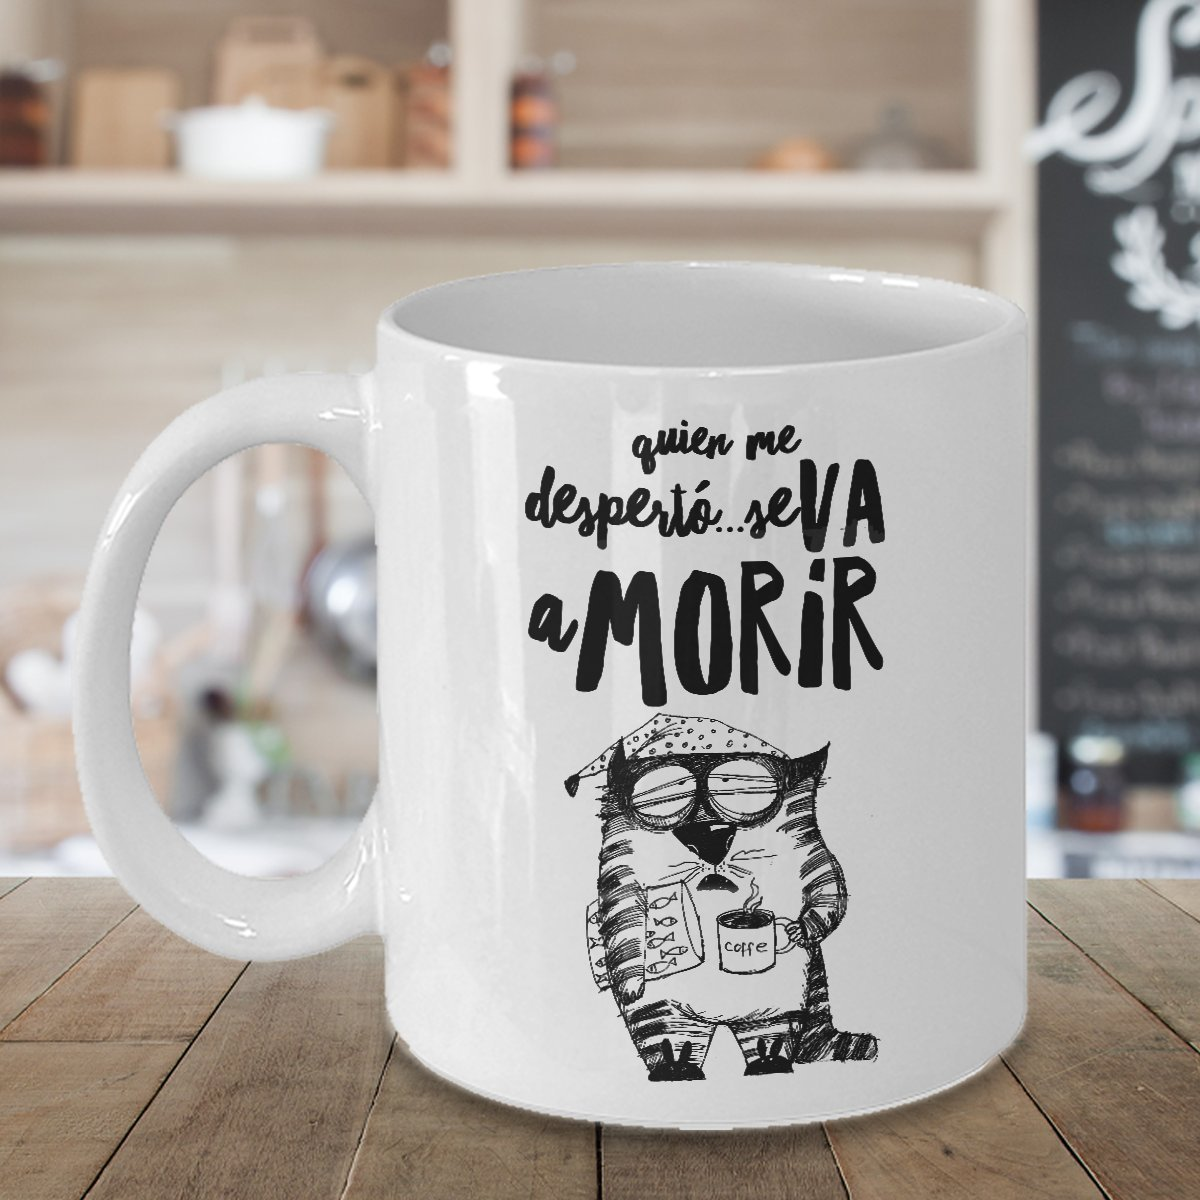 Amazon.com: Tazas de Cafe Gatos Chistosas ; Mugs in Spanish ; Regalo para hombre el dia del padre: Kitchen & Dining